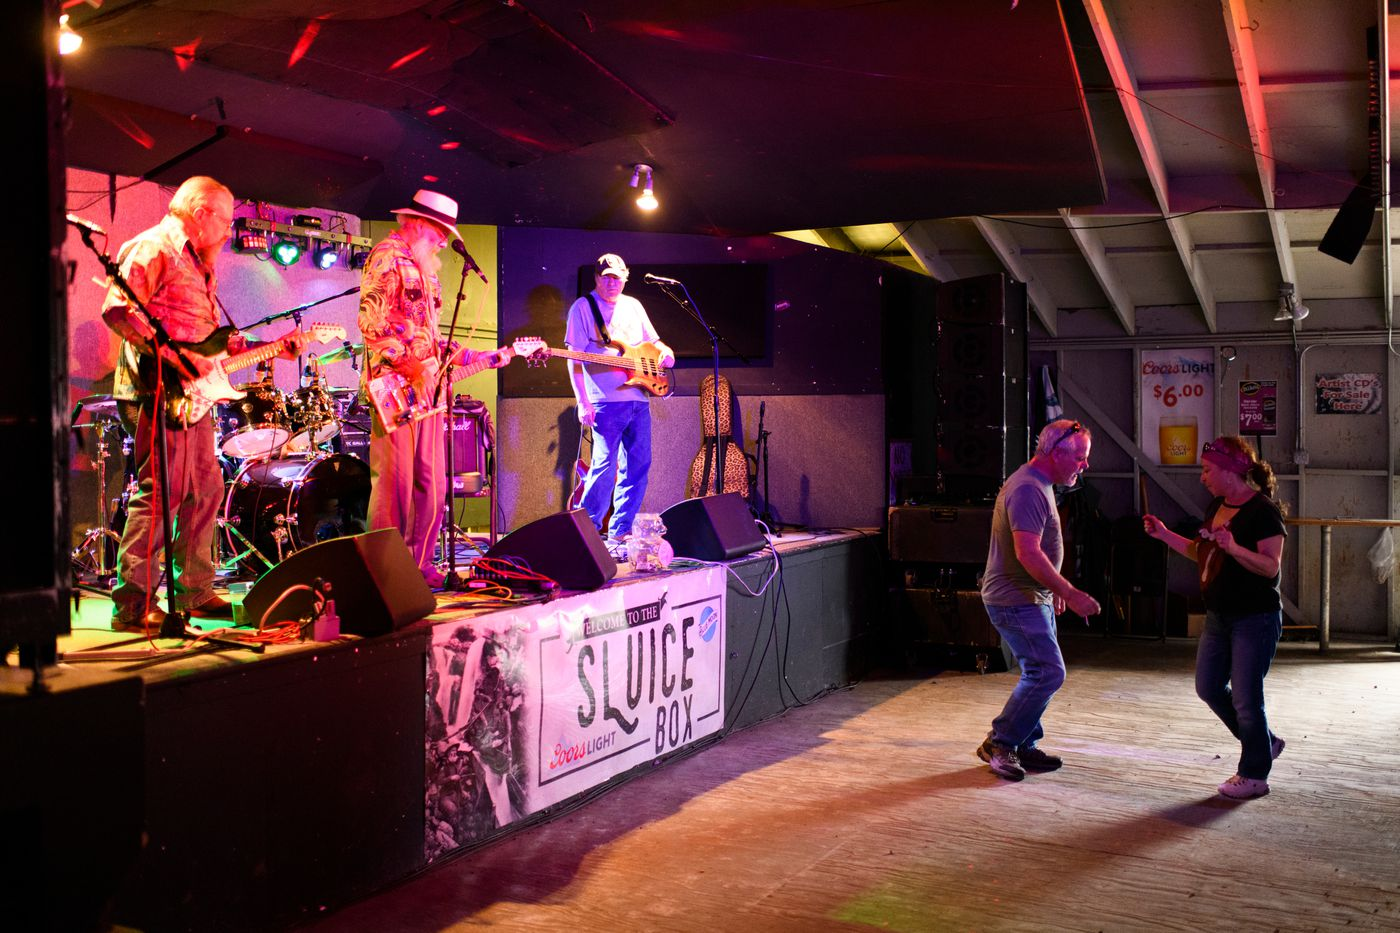 Blues musician Gary Sloan, at center on stage, performs with his band at the Sluice Box. (Marc Lester / ADN)